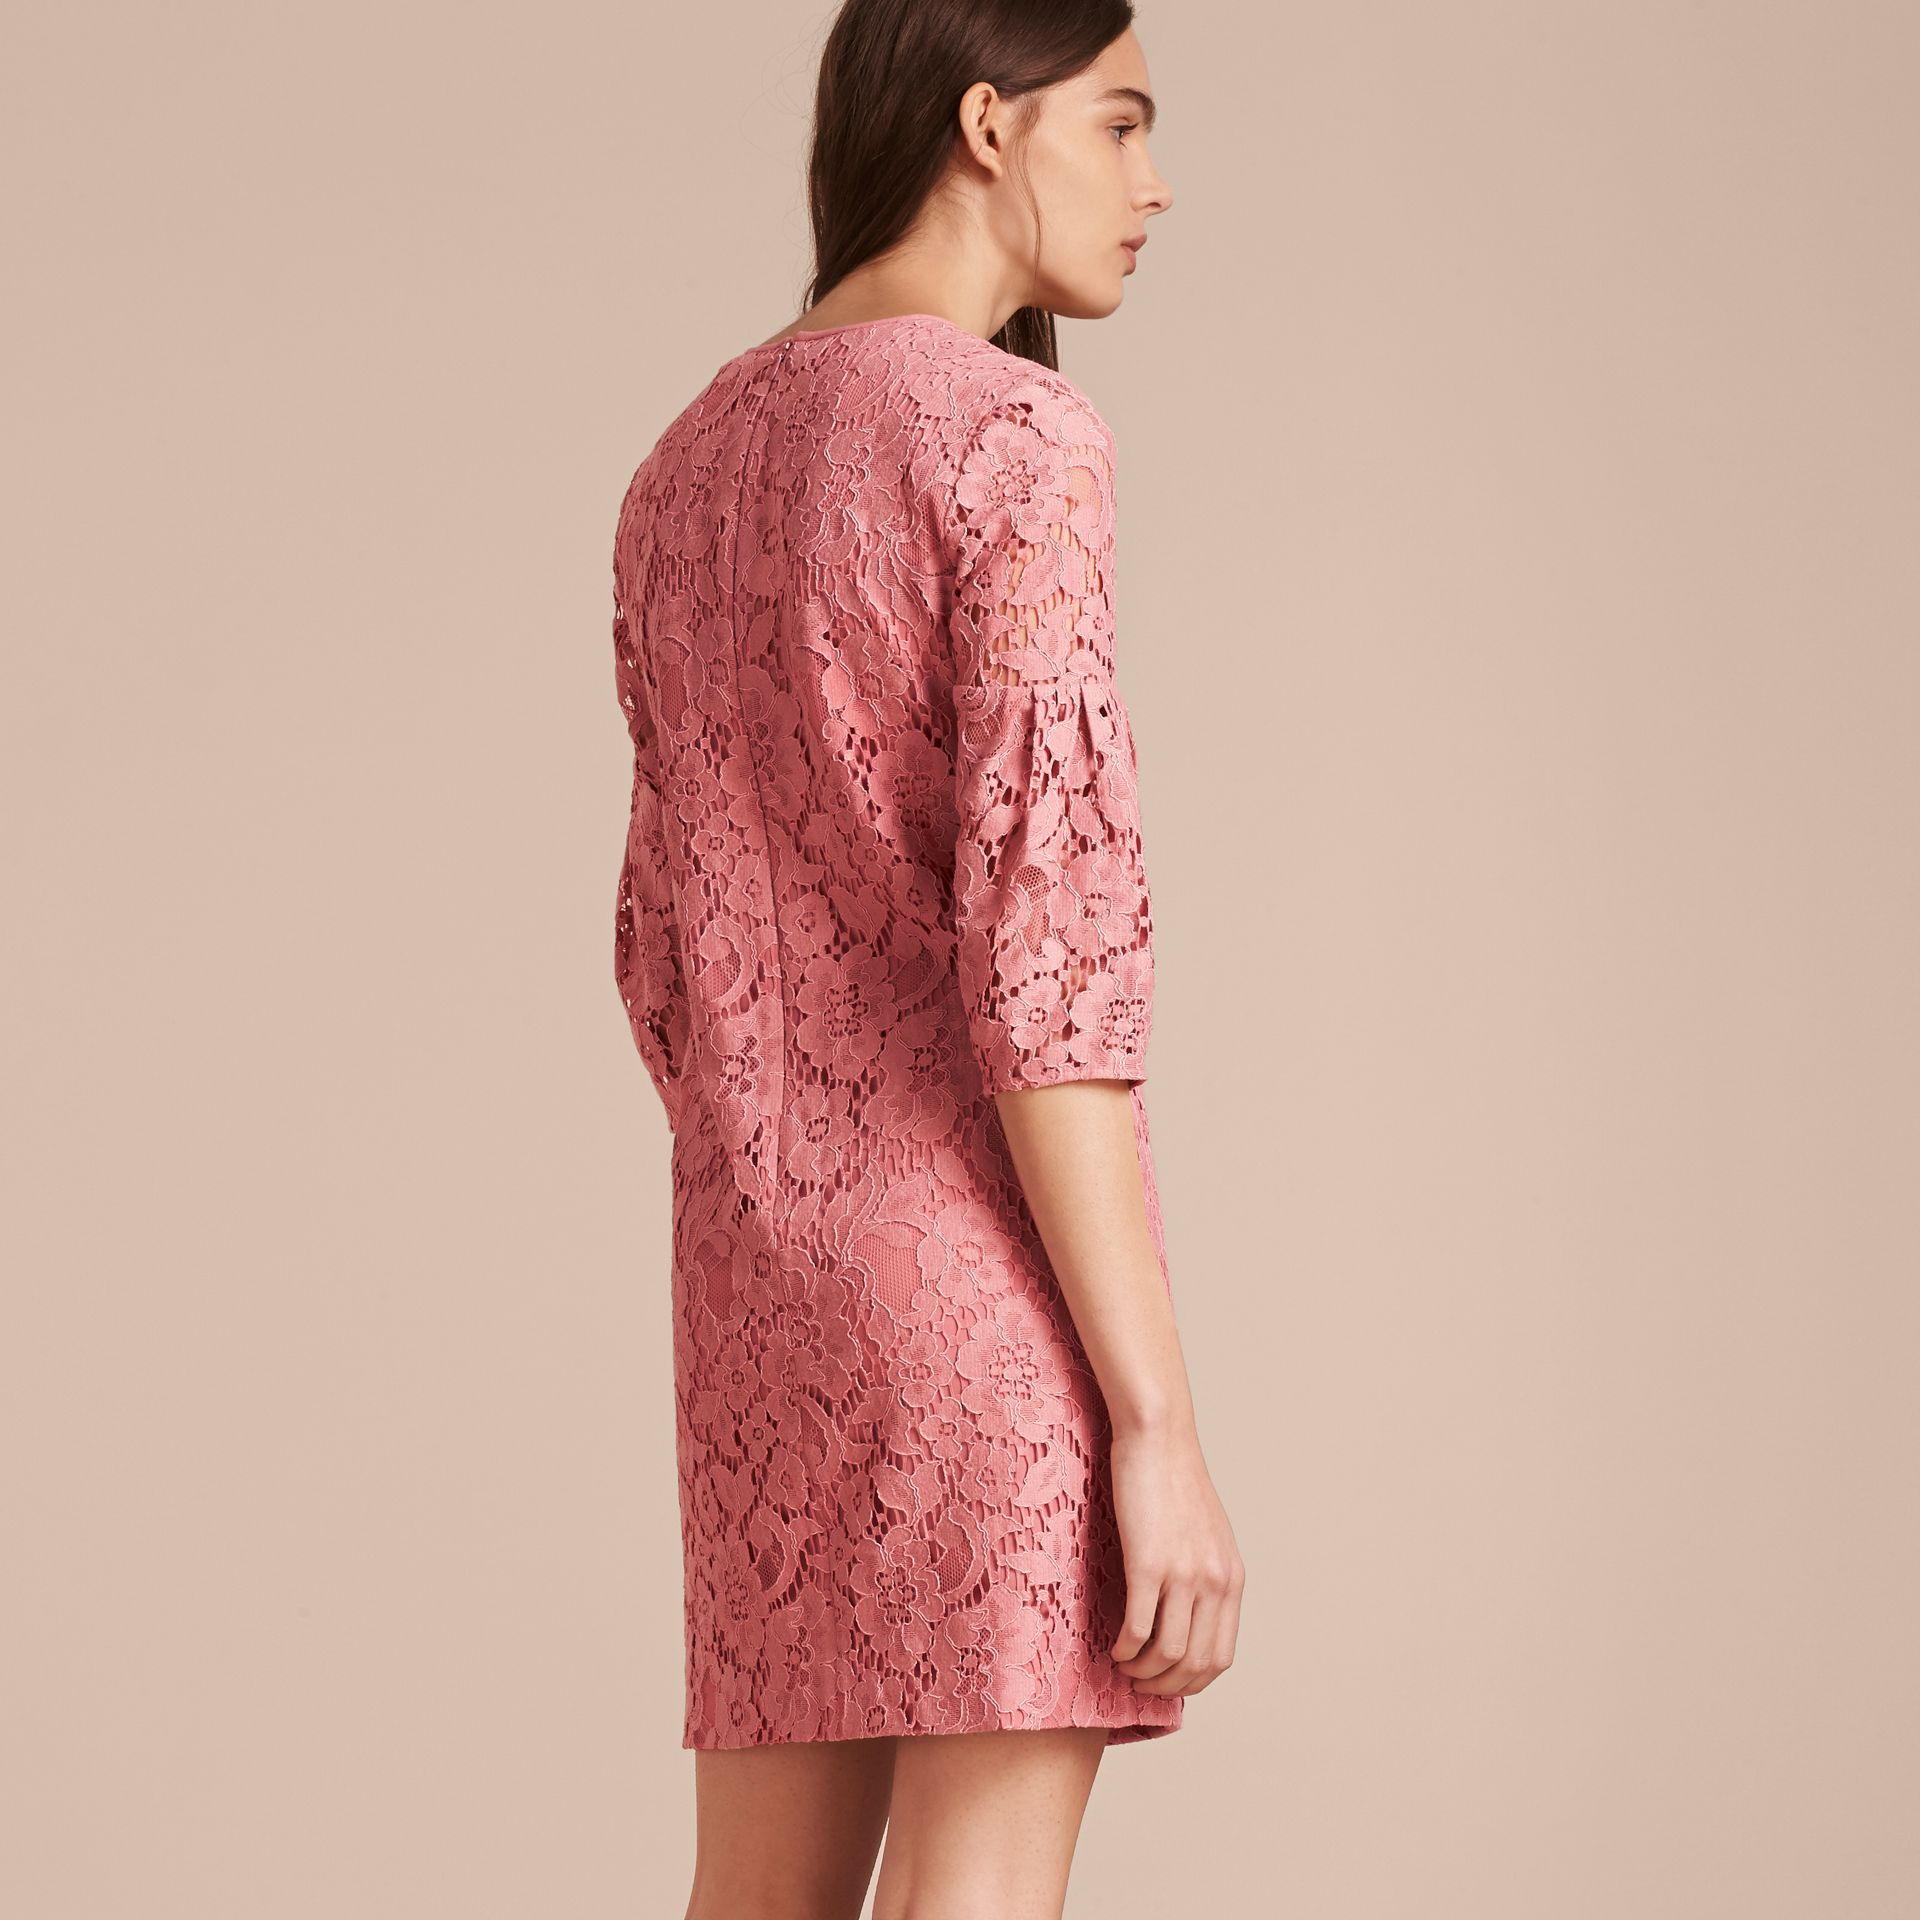 Puff-sleeved Floral Lace Shift Dress - gallery image 3